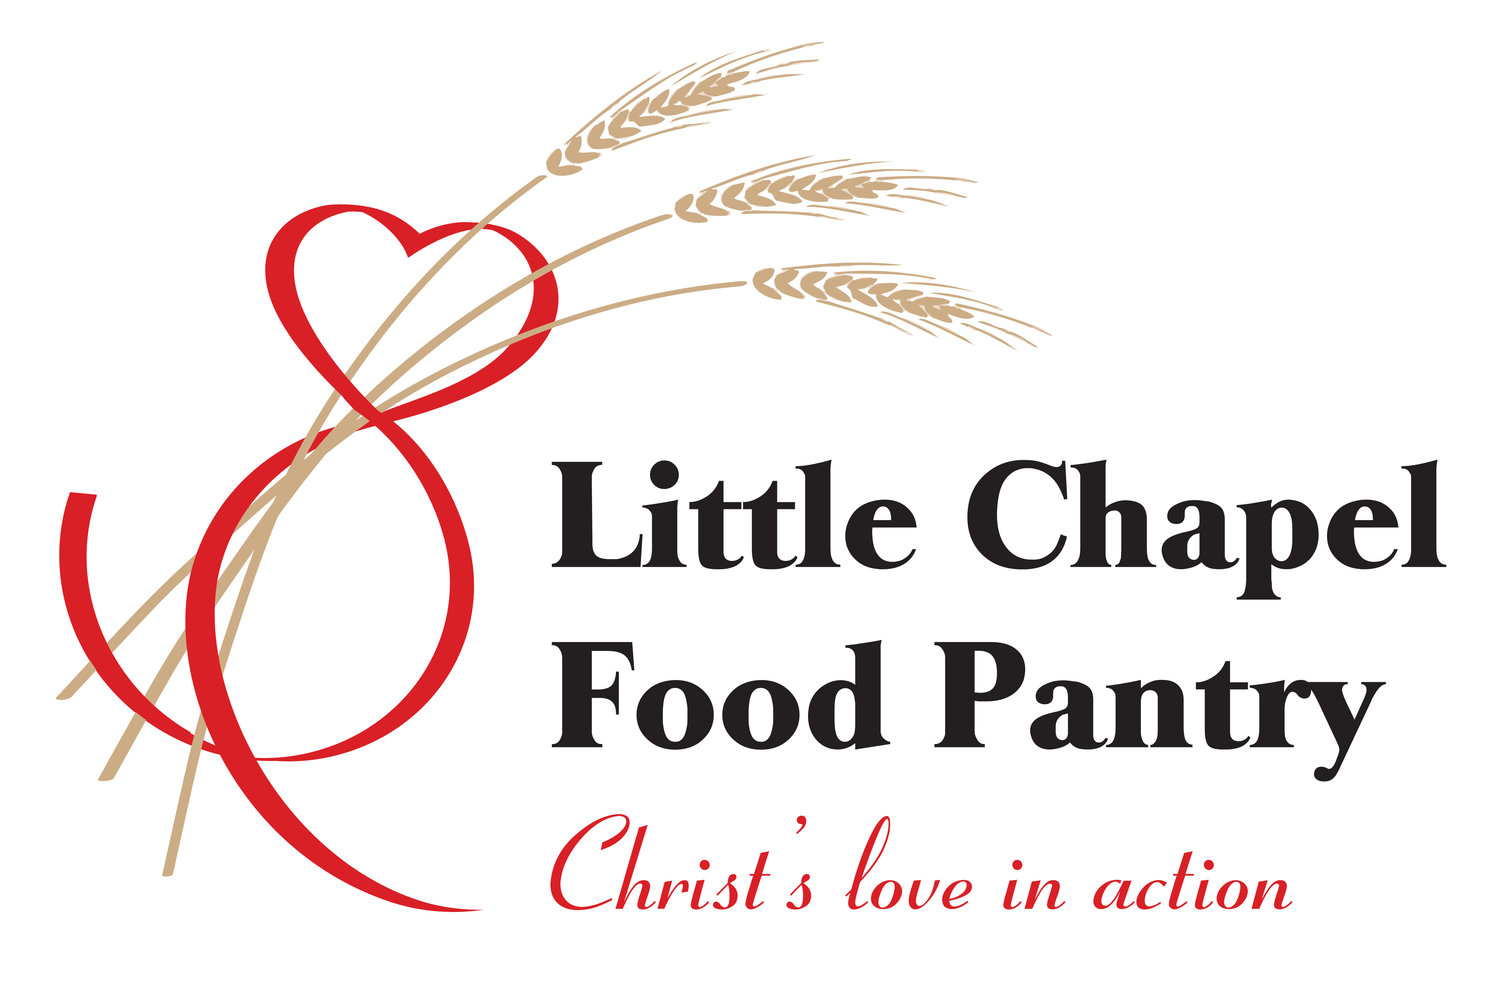 Little Chapel Food Pantry